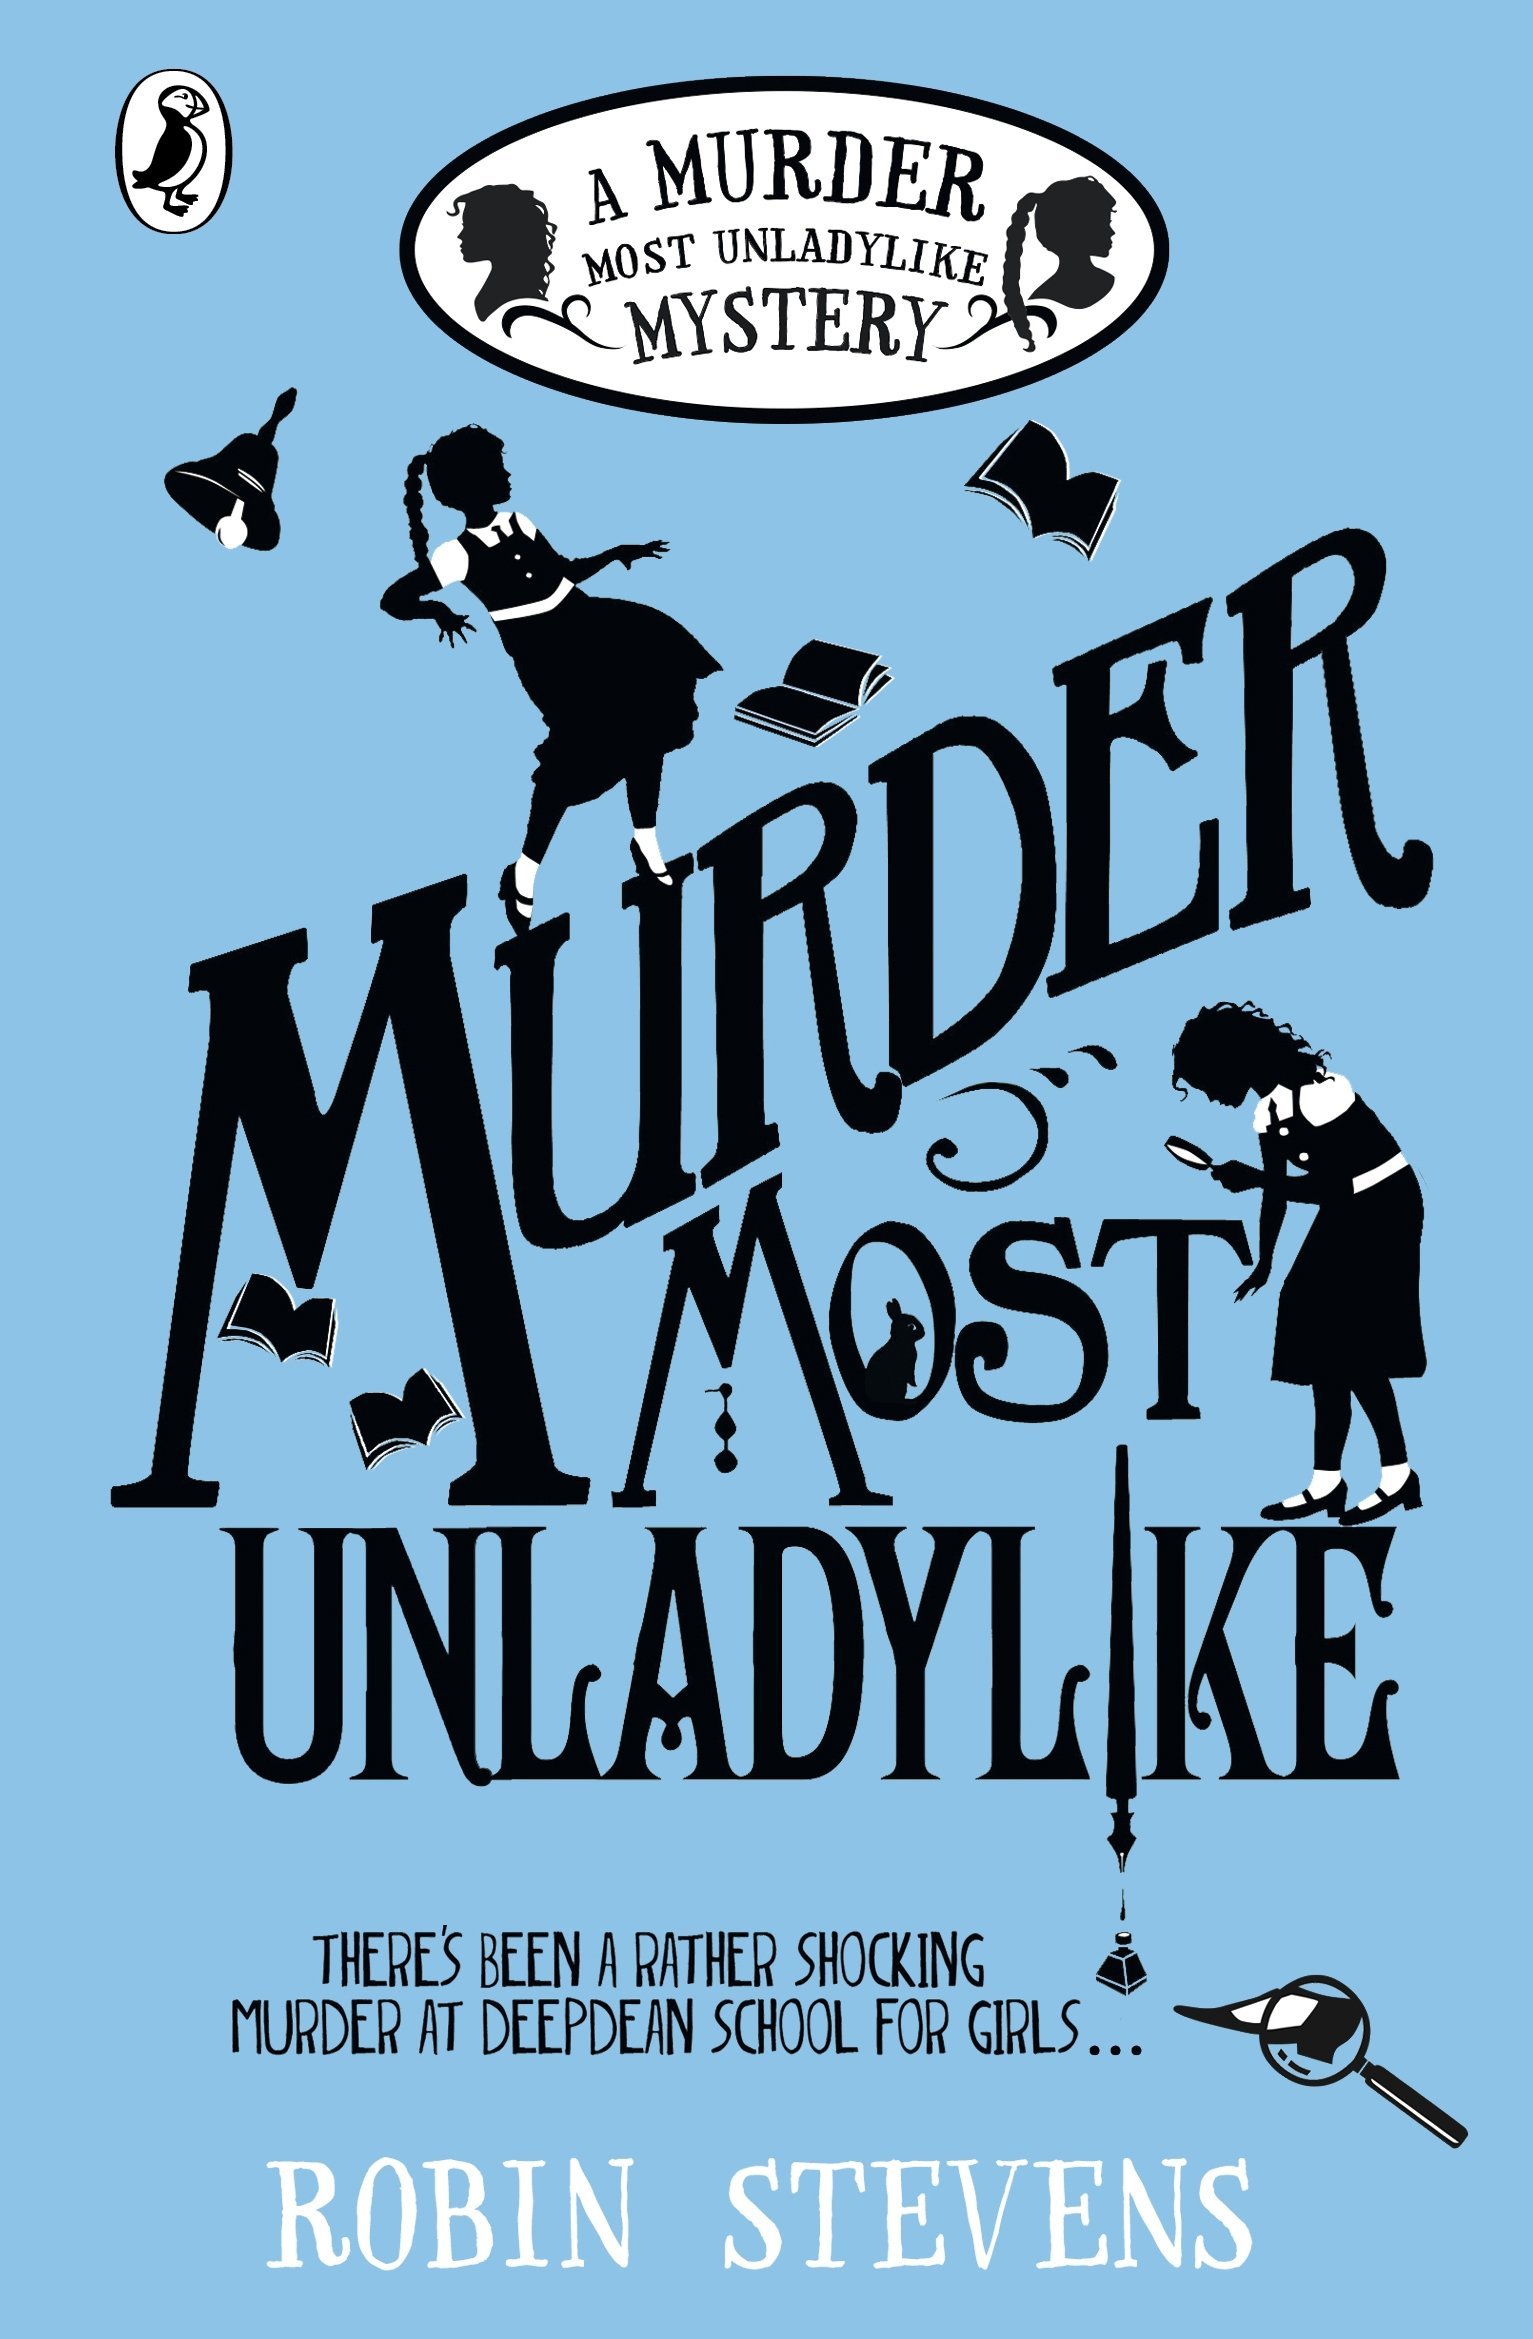 Murder Most Unladylike: A Murder Most Unladylike Mystery (English Edition) Di Robin Stevens